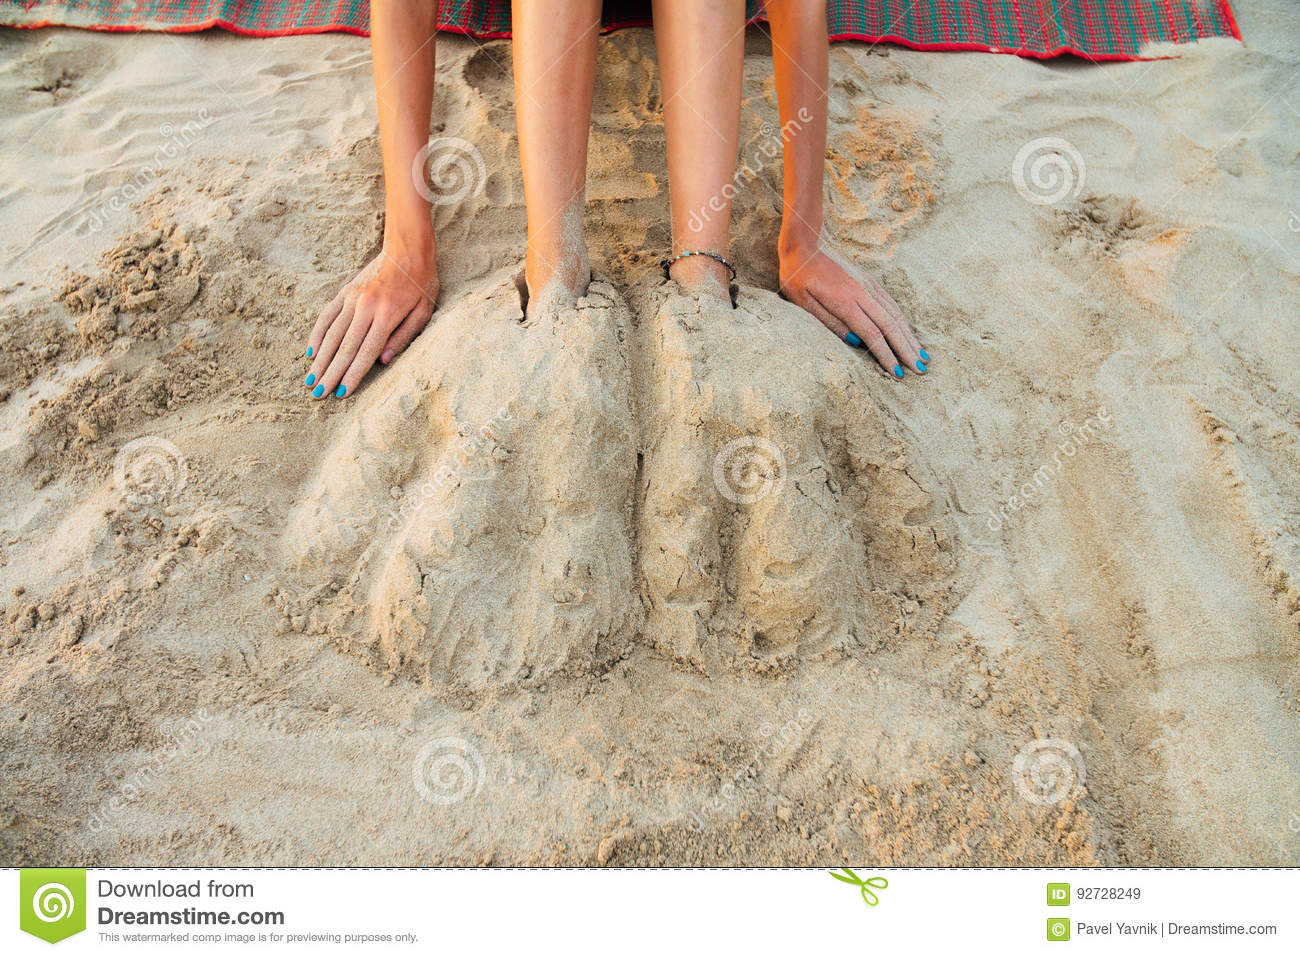 Legs beautiful young woman buried in sand on beach. woman sitting on sand